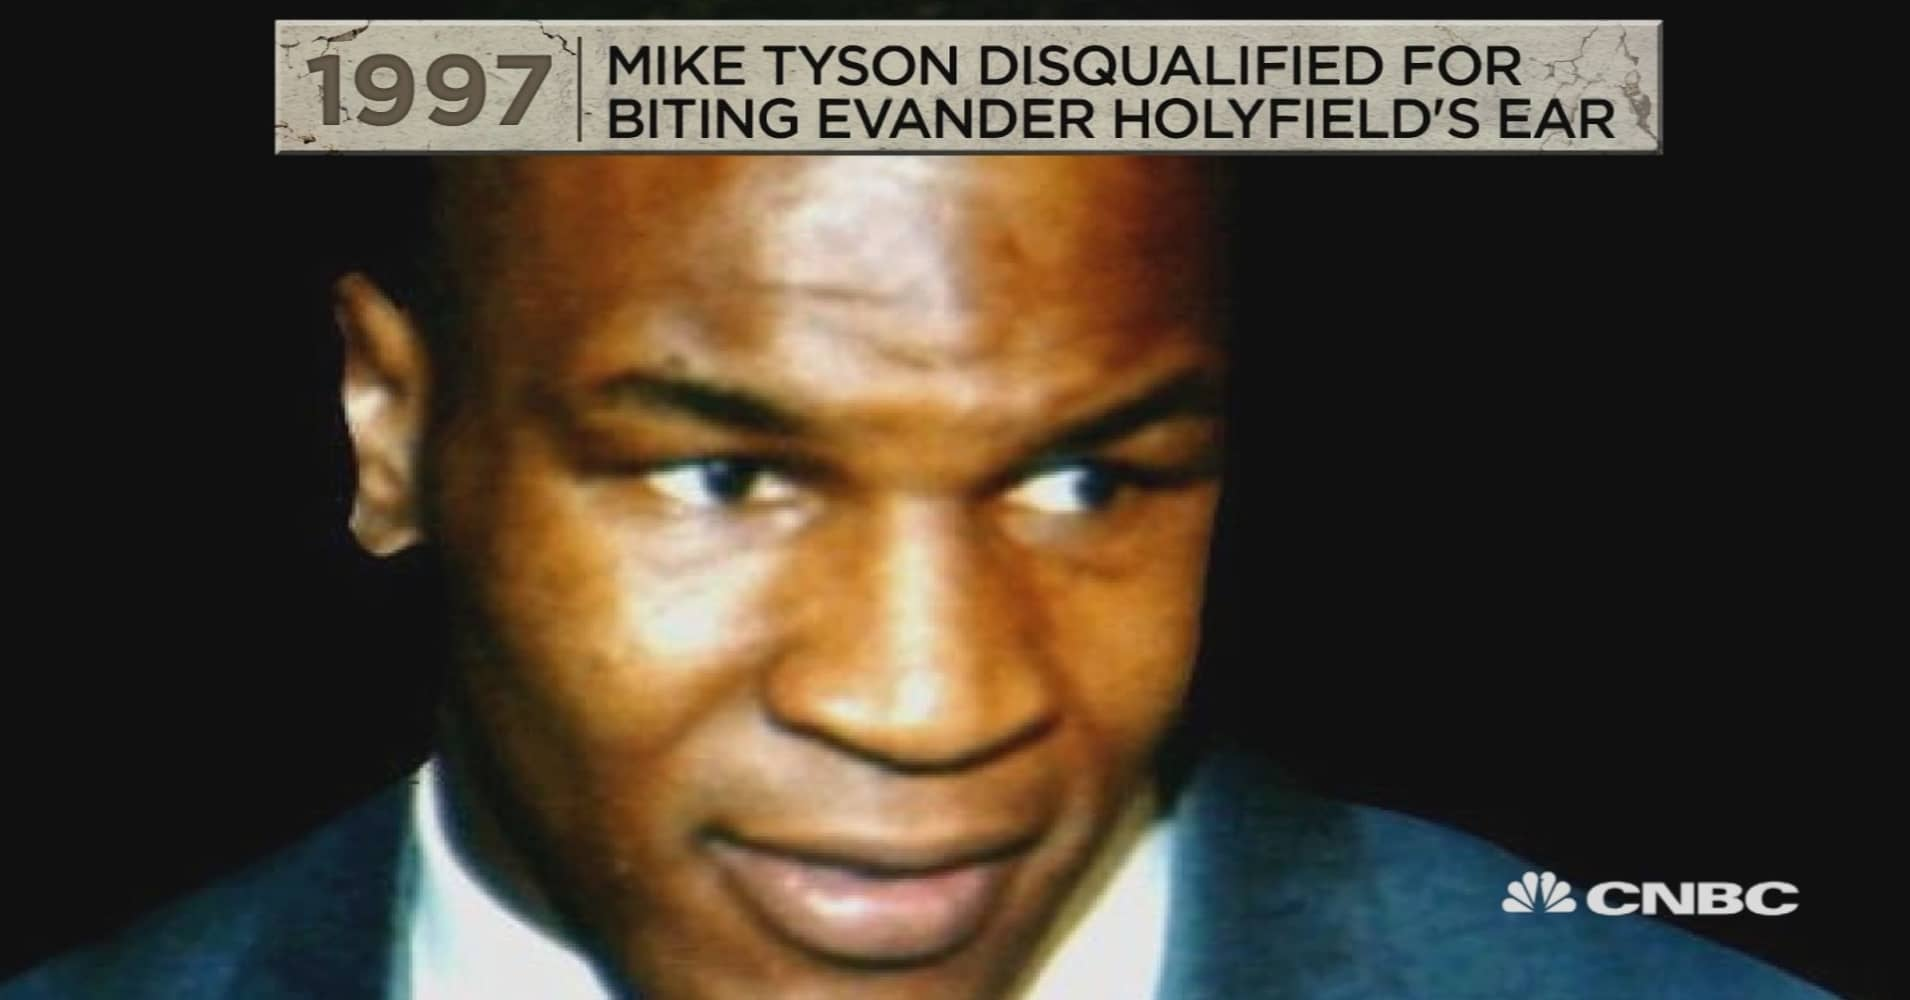 Mike Tyson Christmas Meme.This Day In History June 28 2019